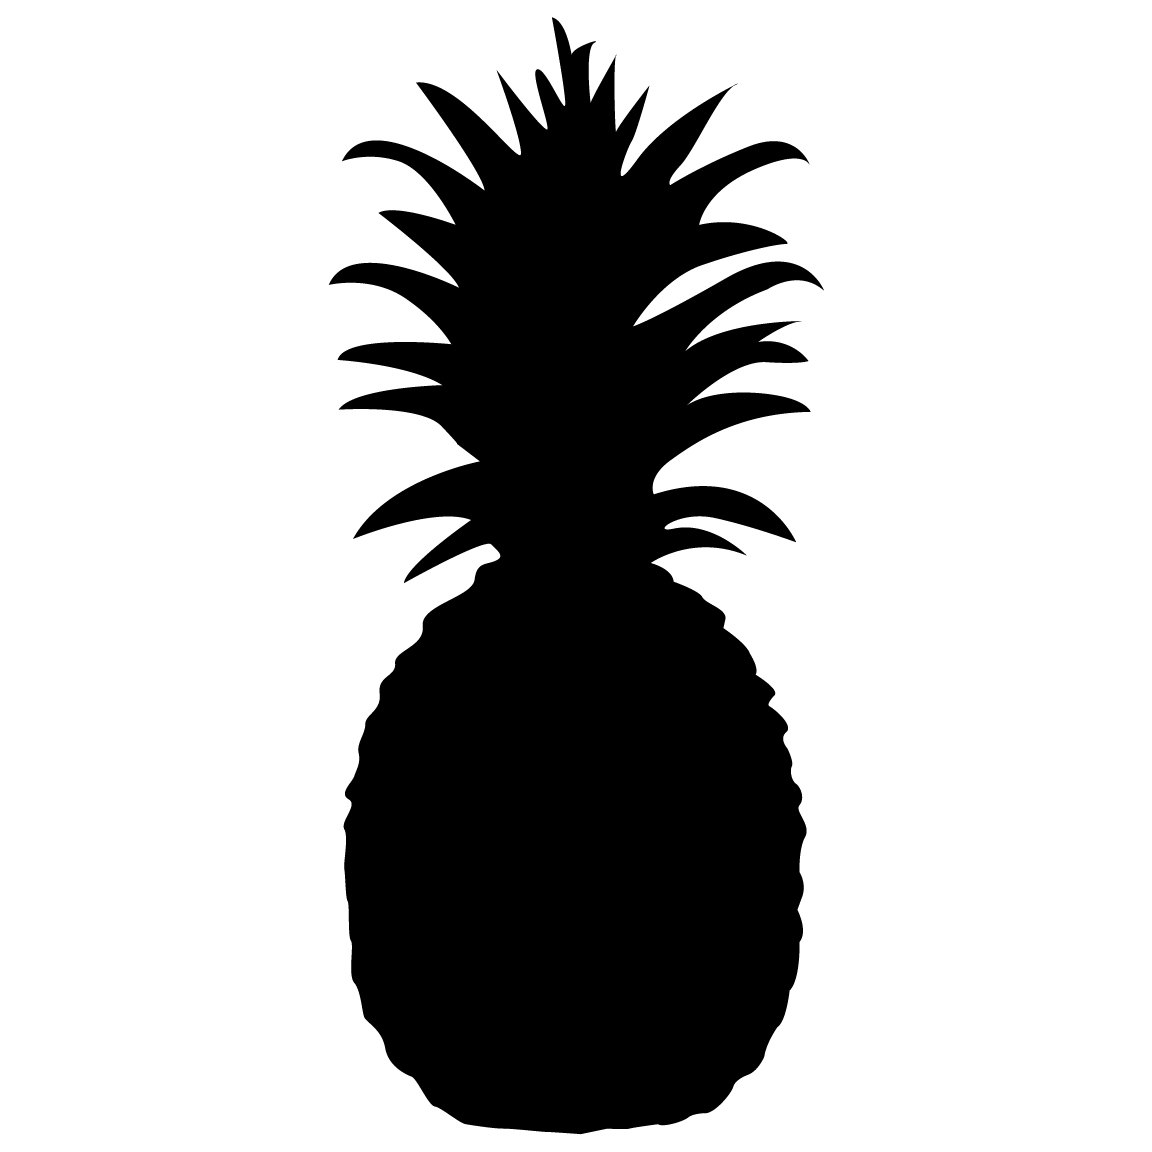 1152x1152 Pineapple Clipart Silhouette